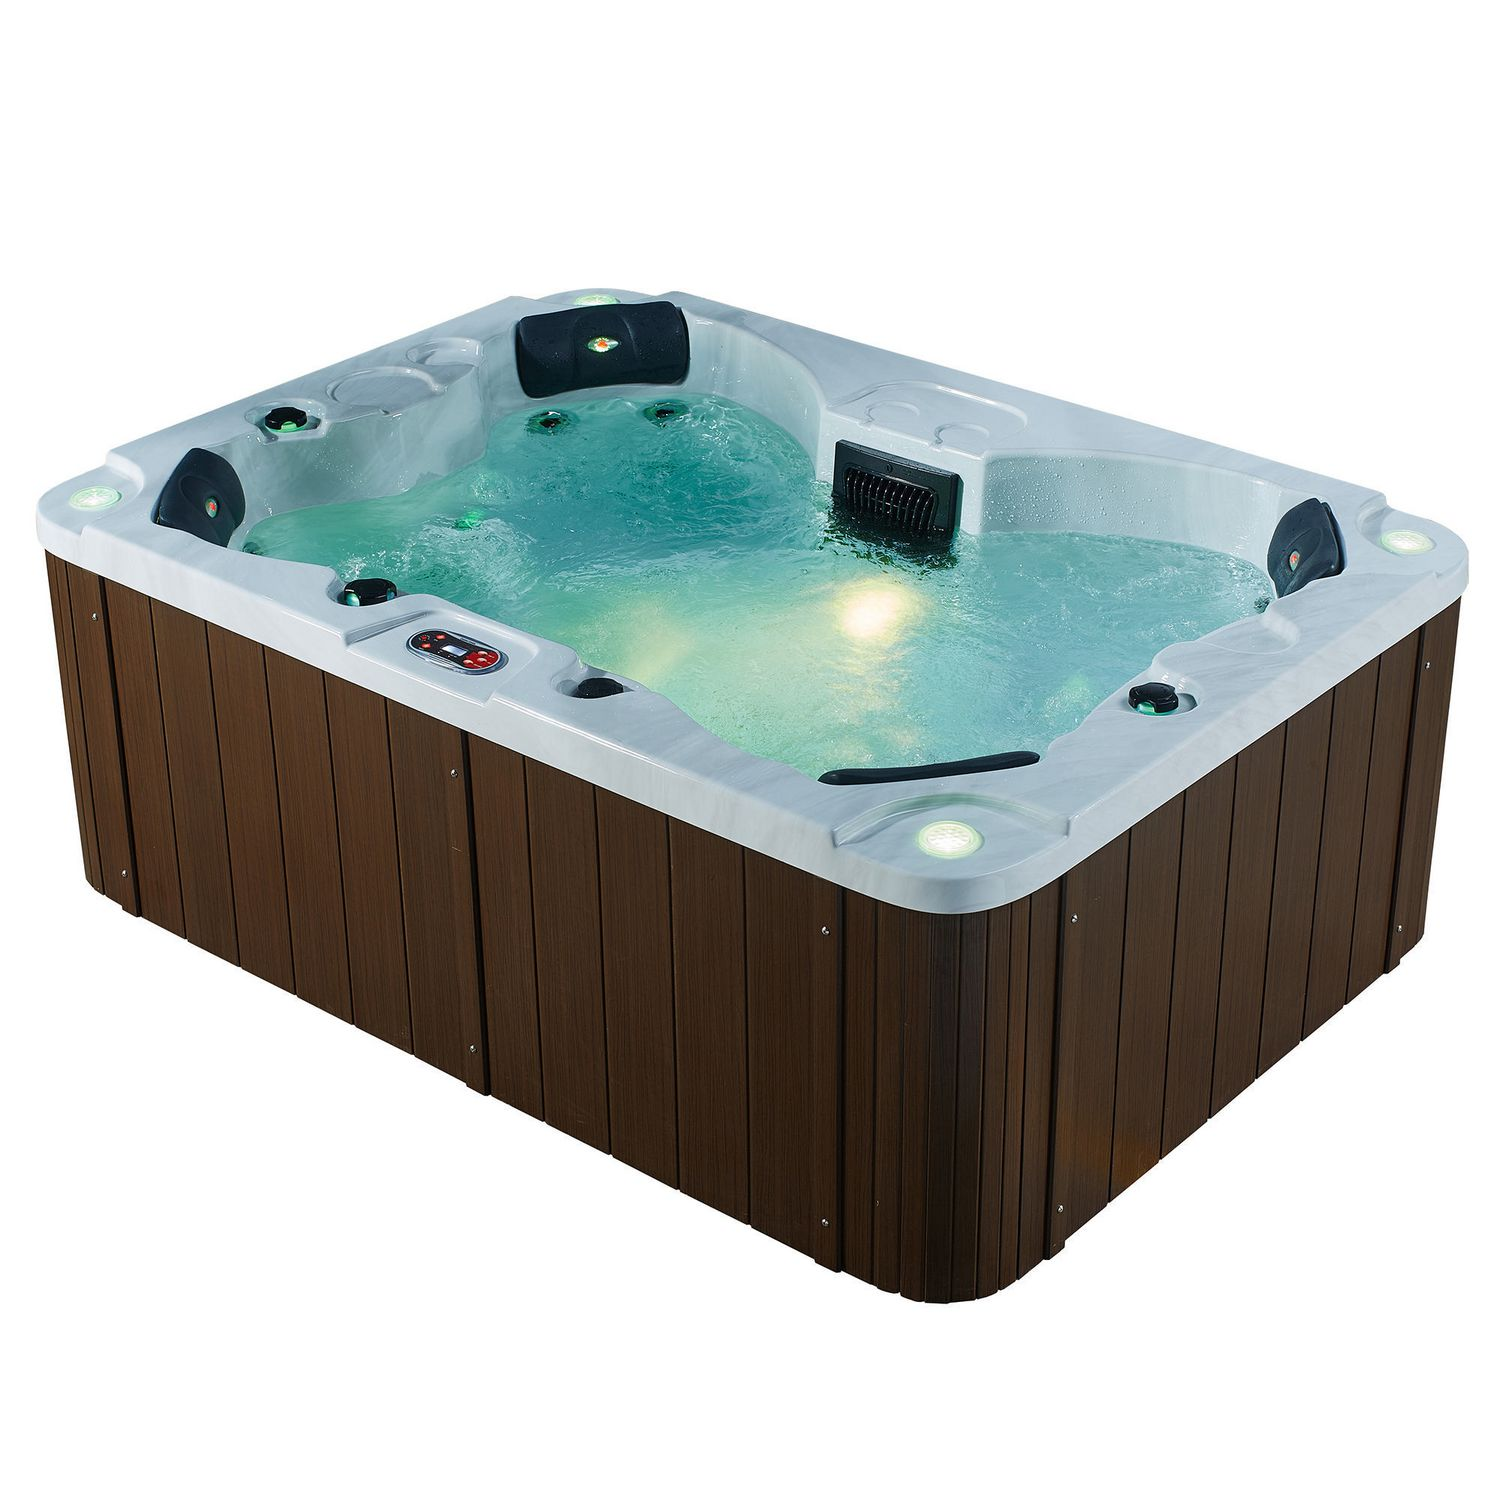 Buy Hot Tubs & Accessories line